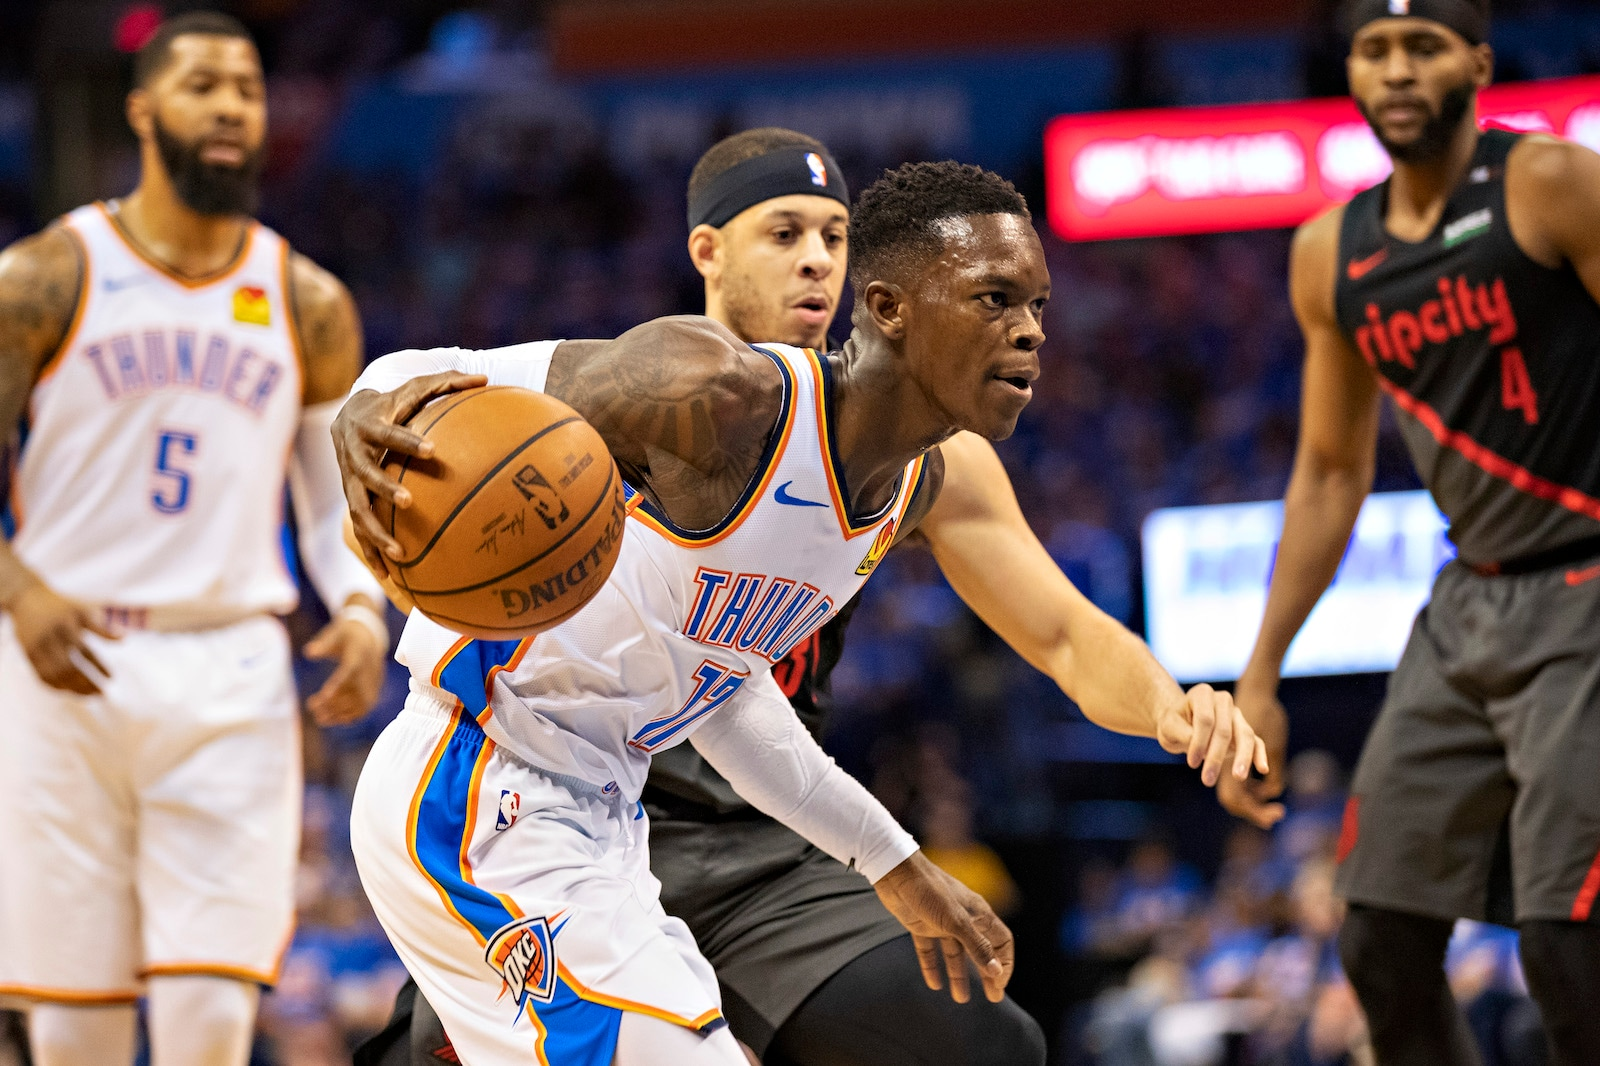 Dennis Schroder #17 of the Oklahoma City Thunder drives to the basket during a game against the Portland Trail Blazers